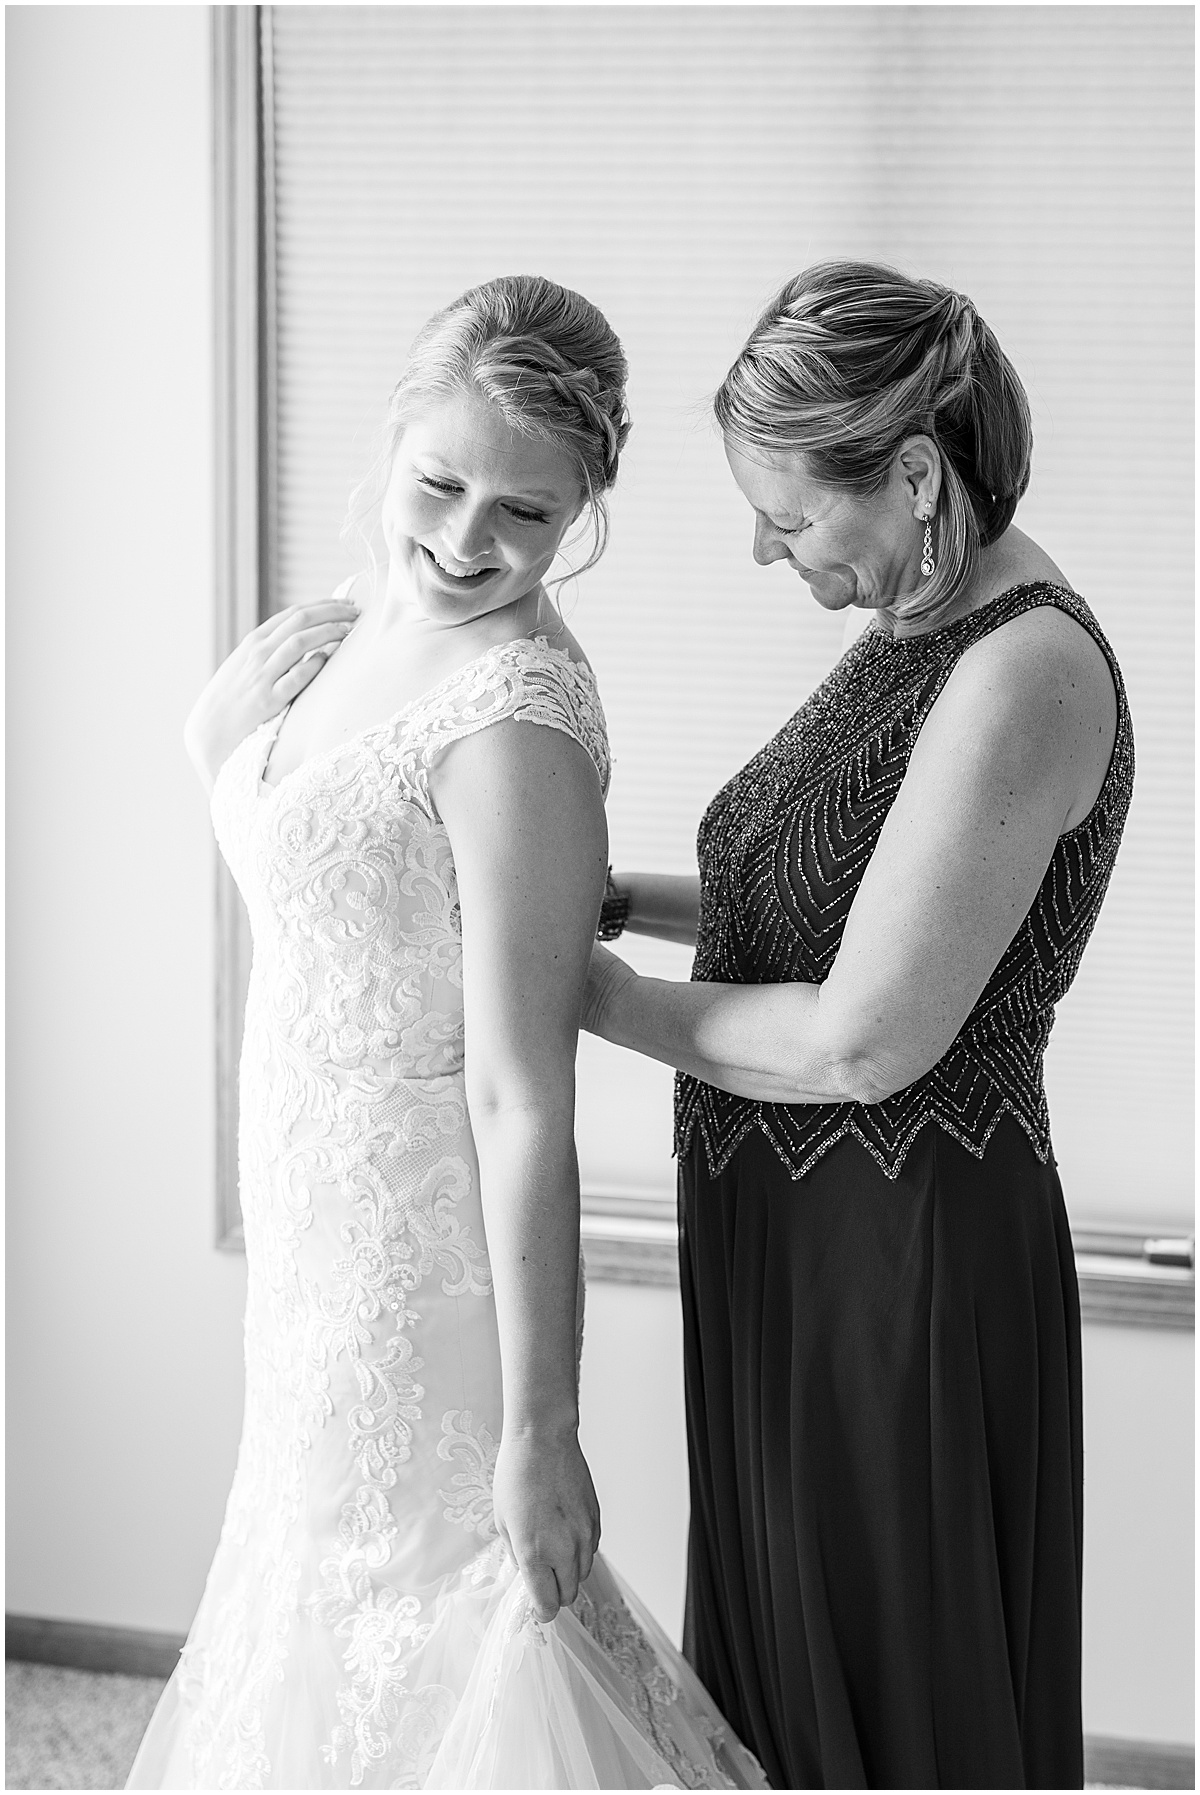 Bride getting ready for at-home, socially distanced wedding in Tinley Park, Illinois